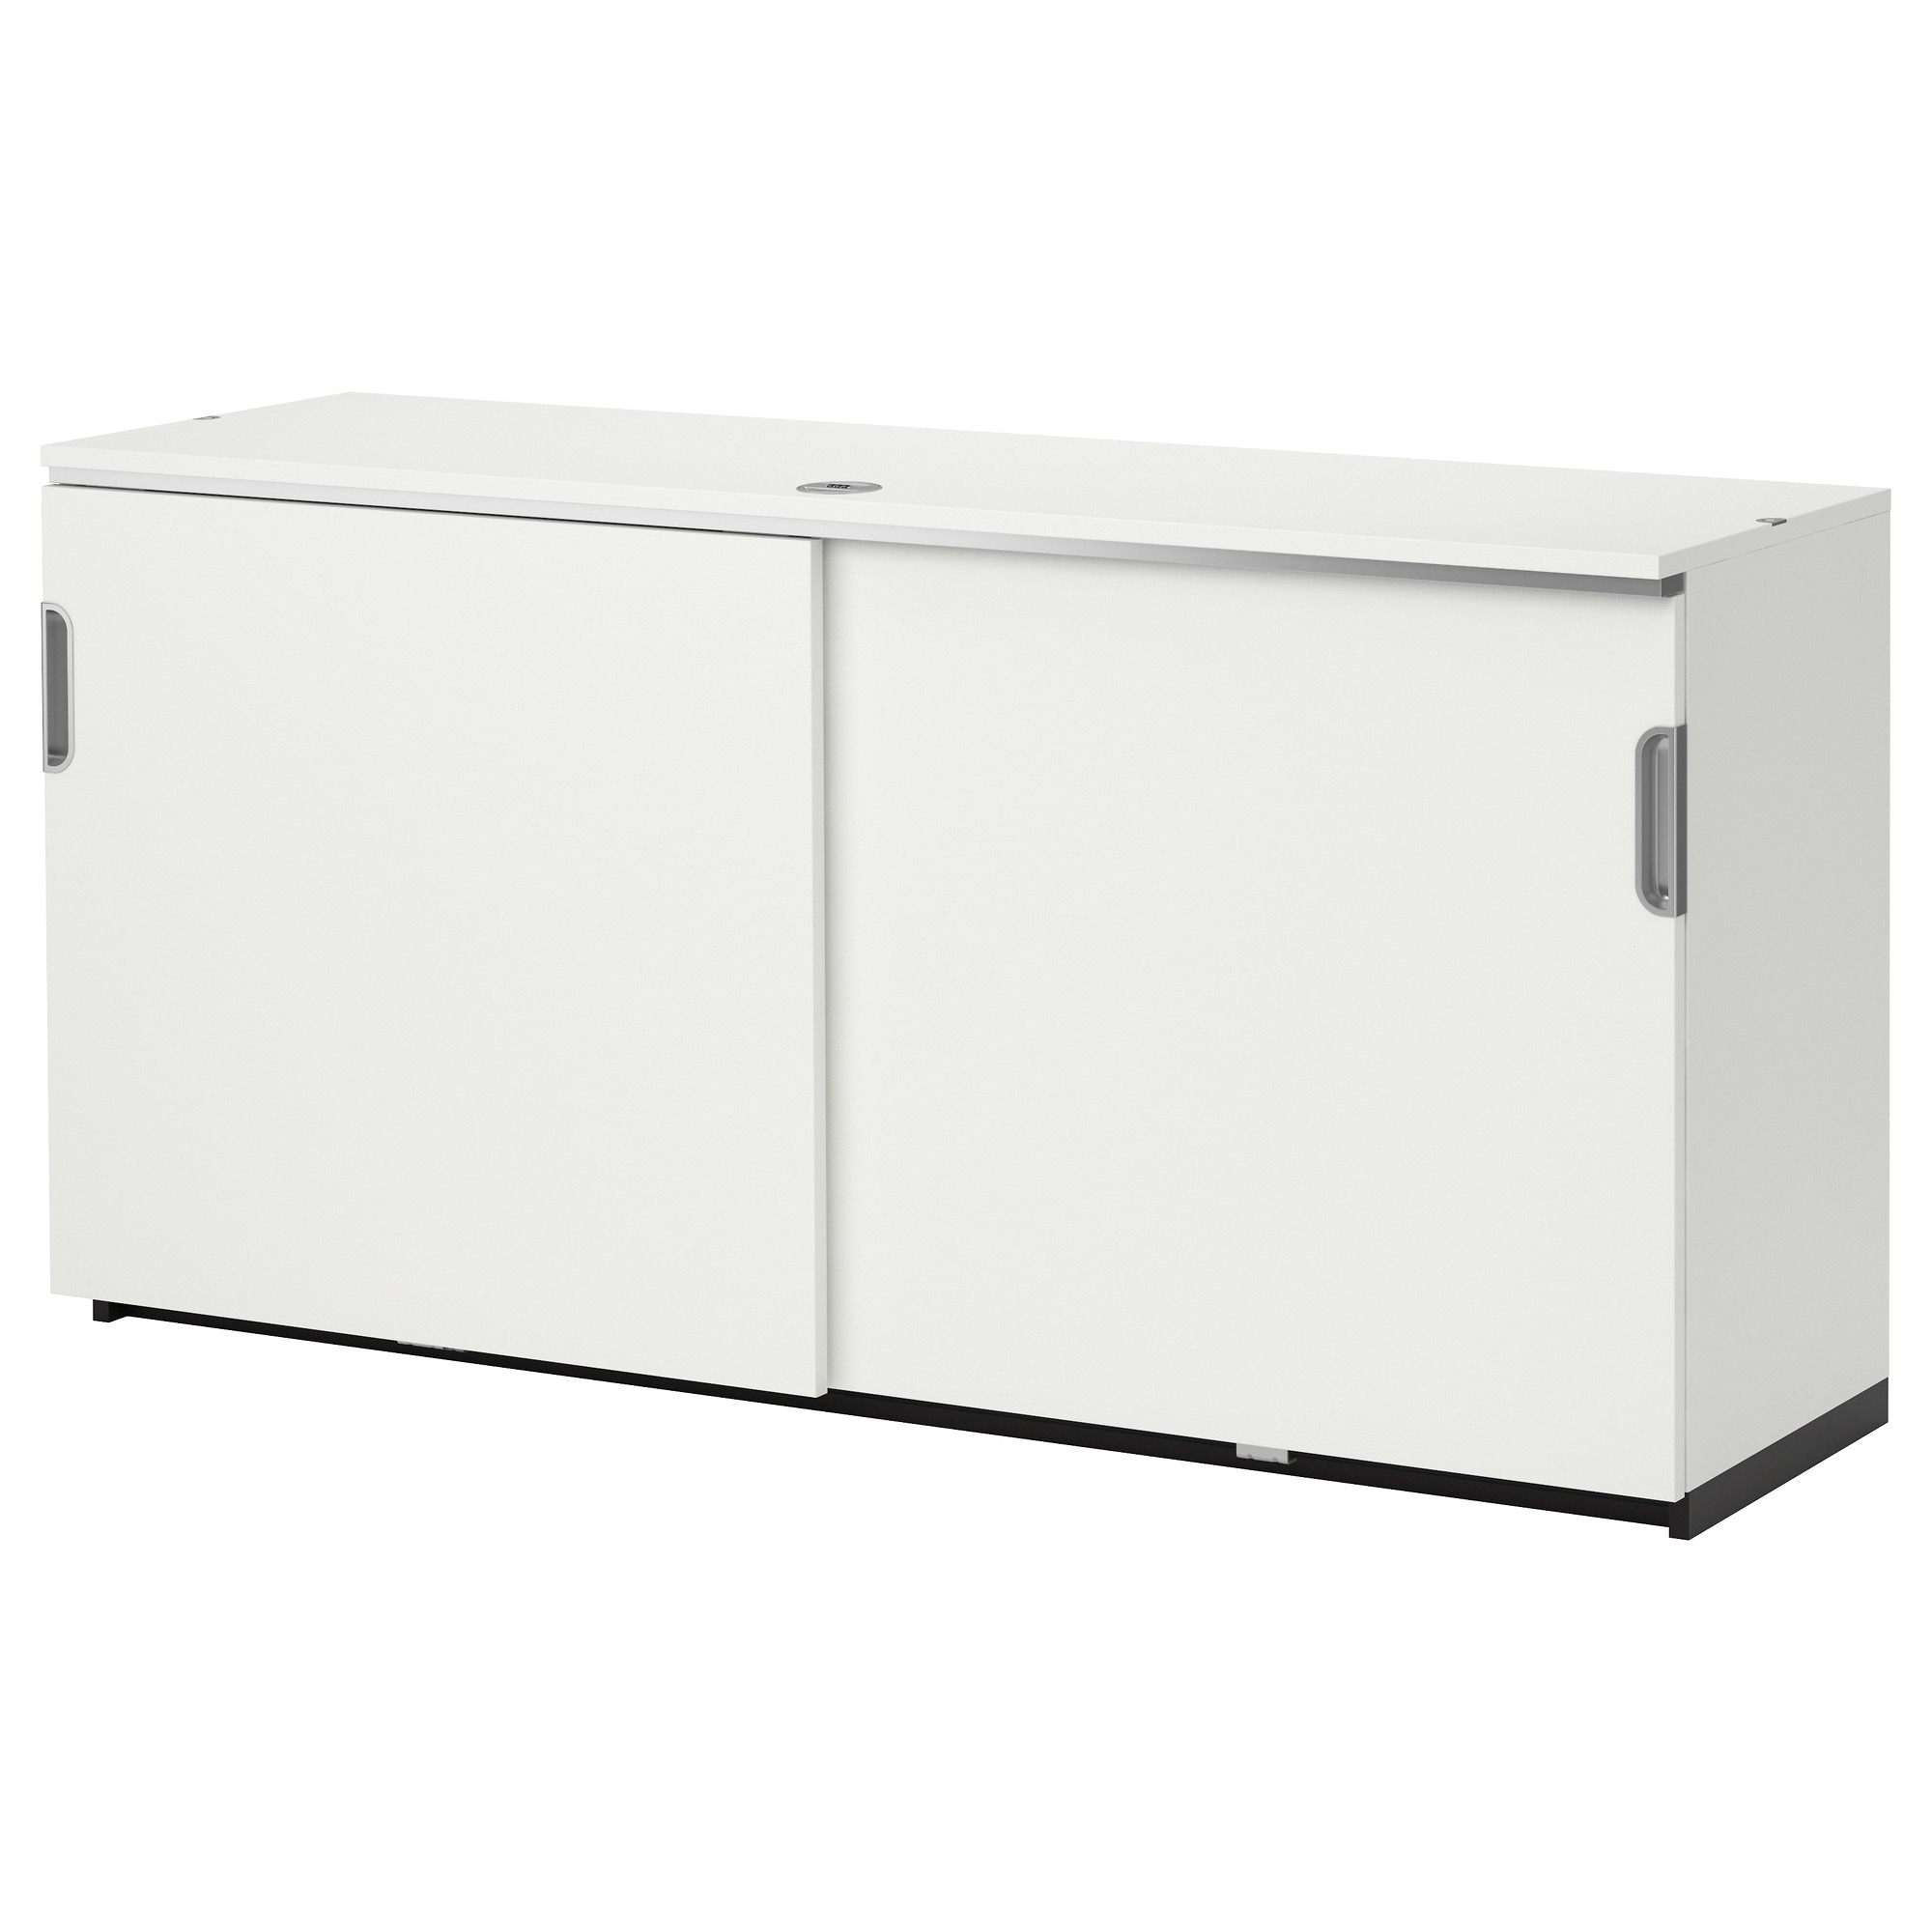 galant cabinet with sliding doors - white - ikea